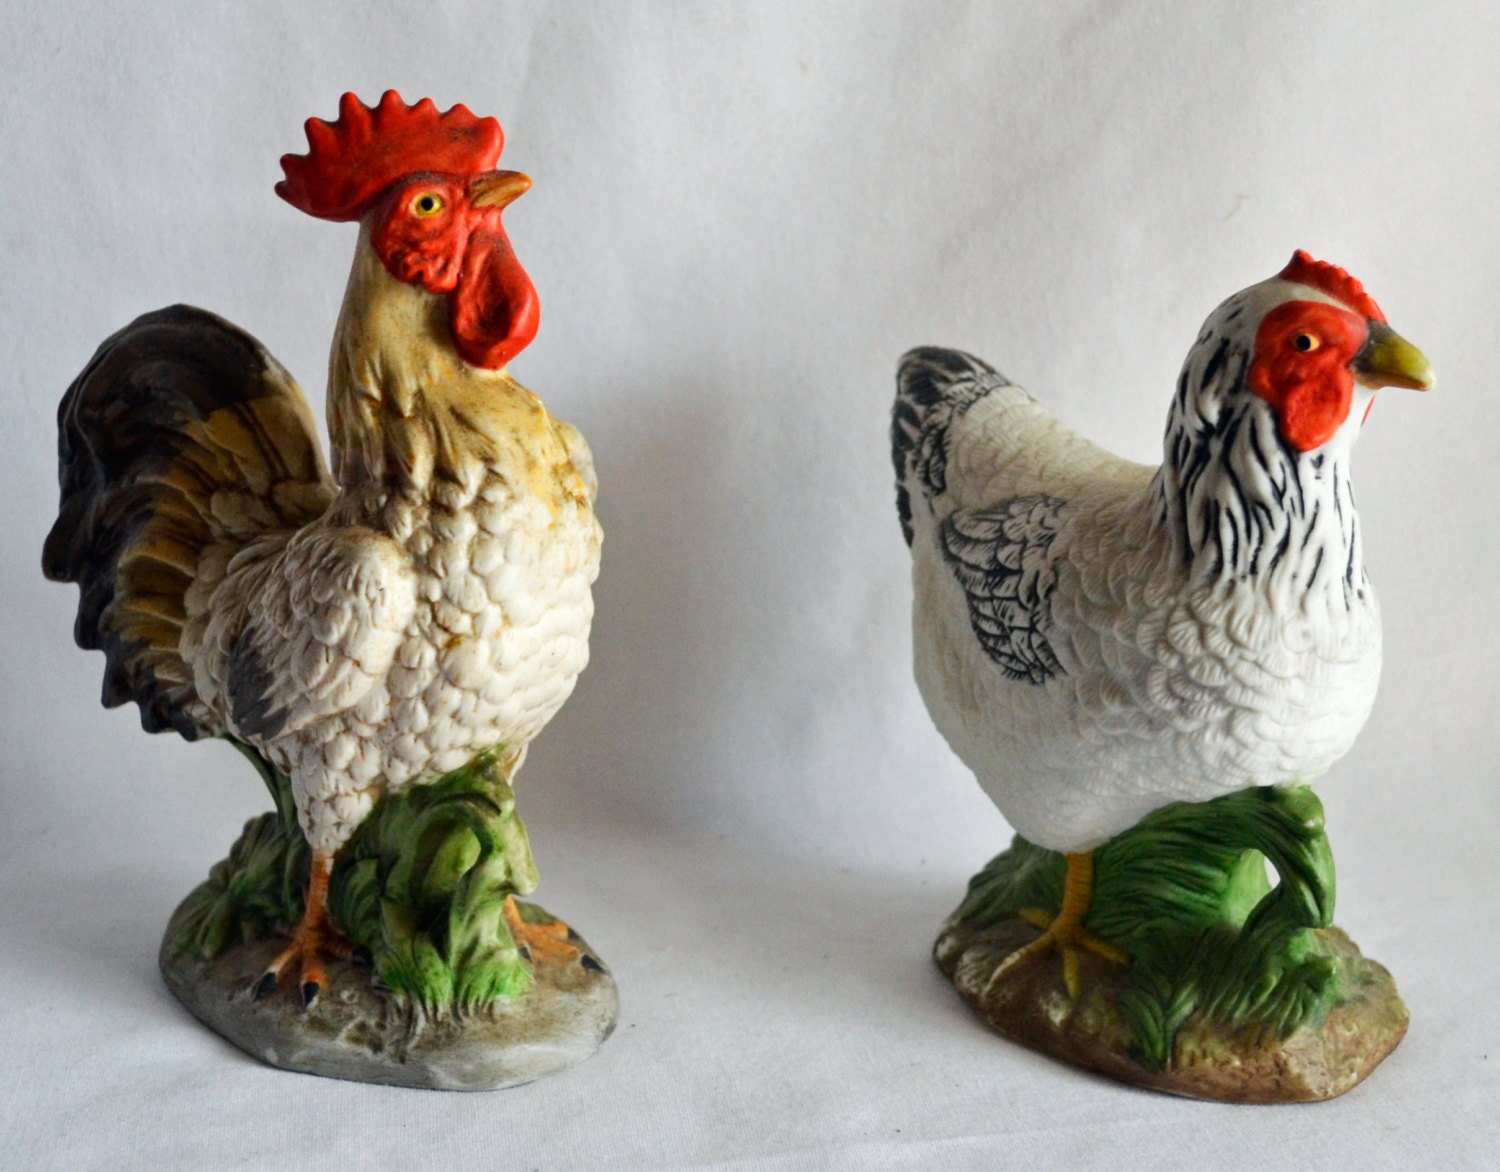 Seashell Home Decor Vintage Ceramic Chicken Amp Rooster Pair Farmhouse Decor